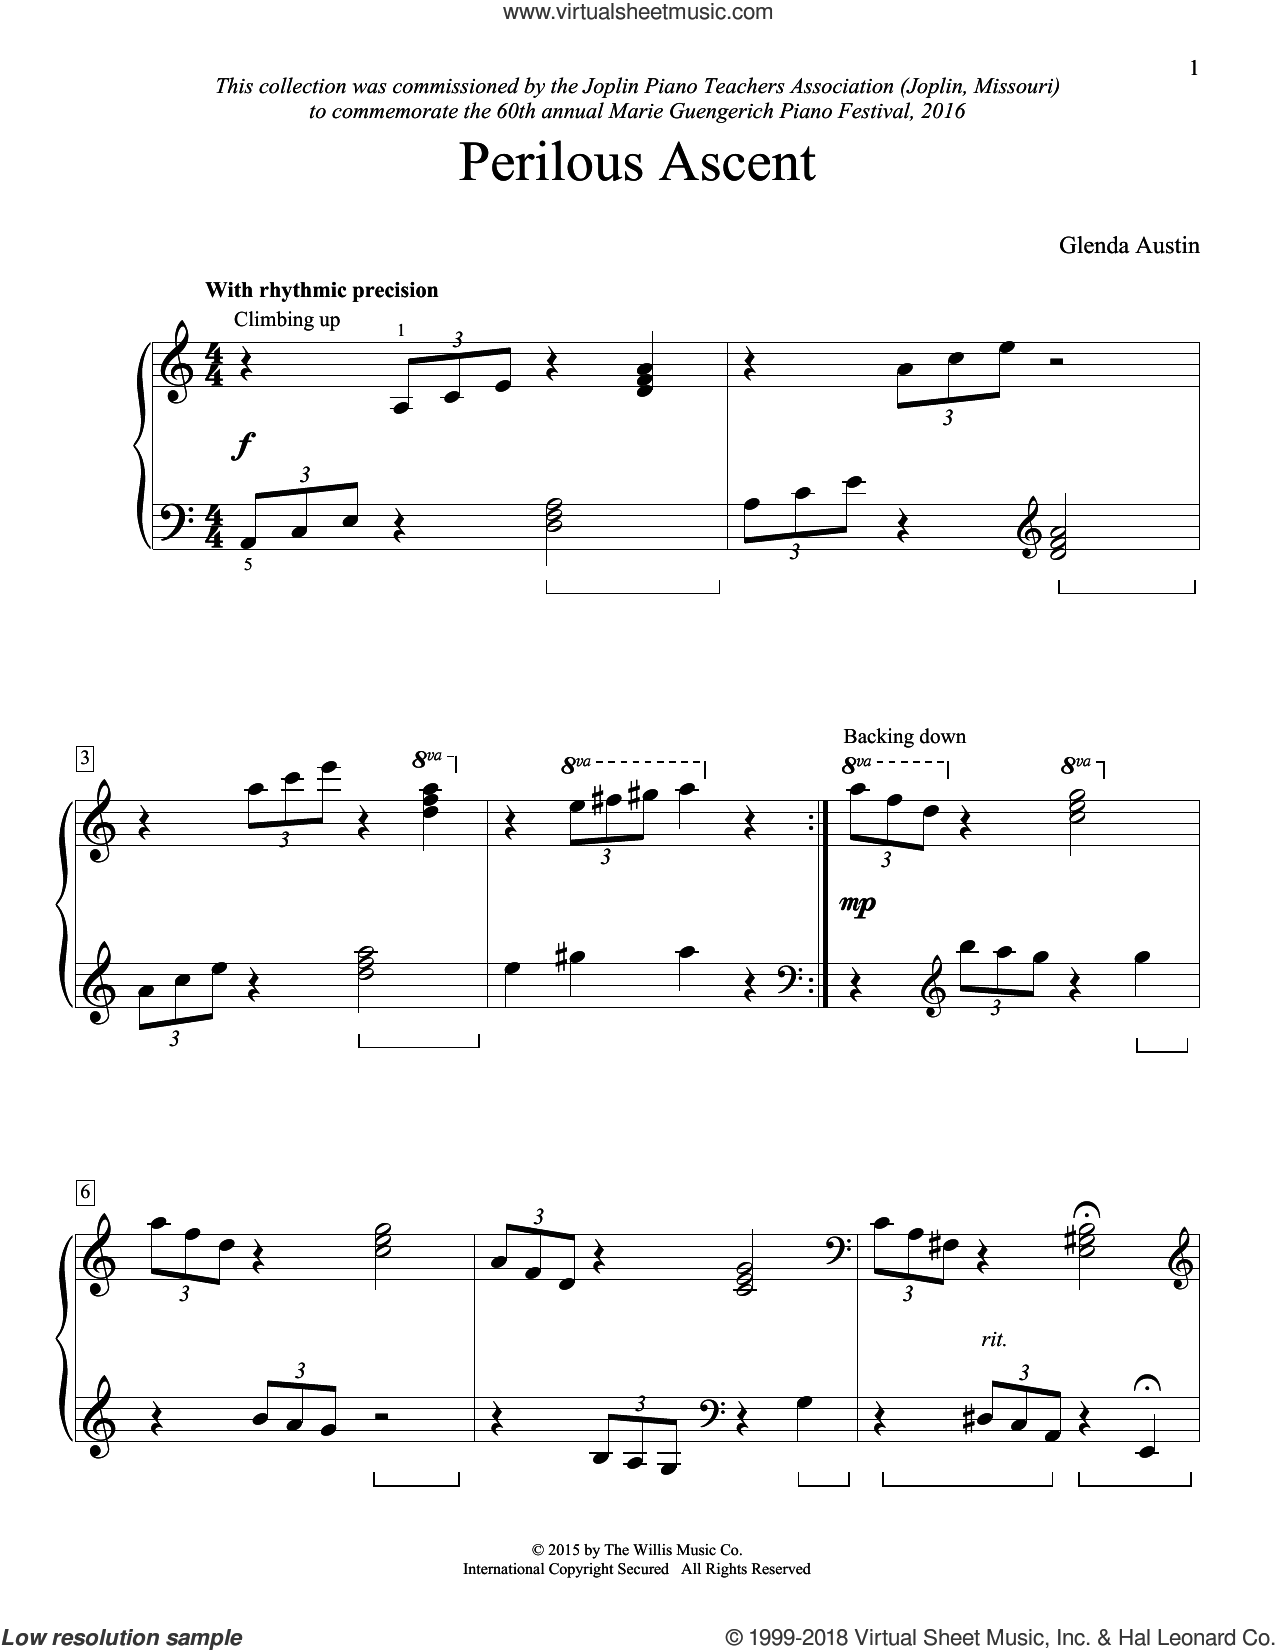 Perilous Ascent sheet music for piano solo (elementary) by Glenda Austin